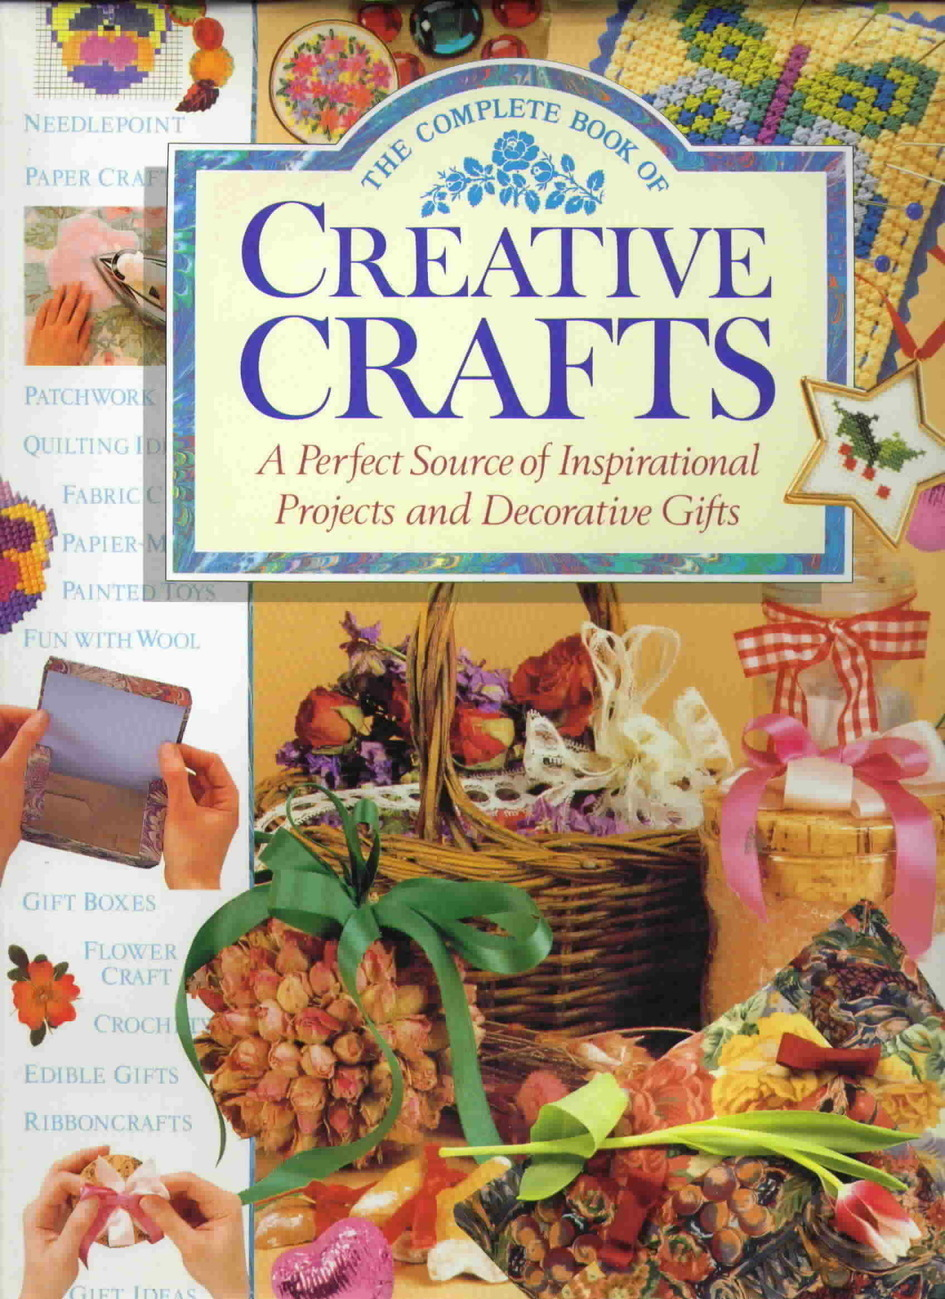 The Complete Book of Creative Crafts, Decorative Gifts, Inspirational Projects Anness Publishing Ltd.